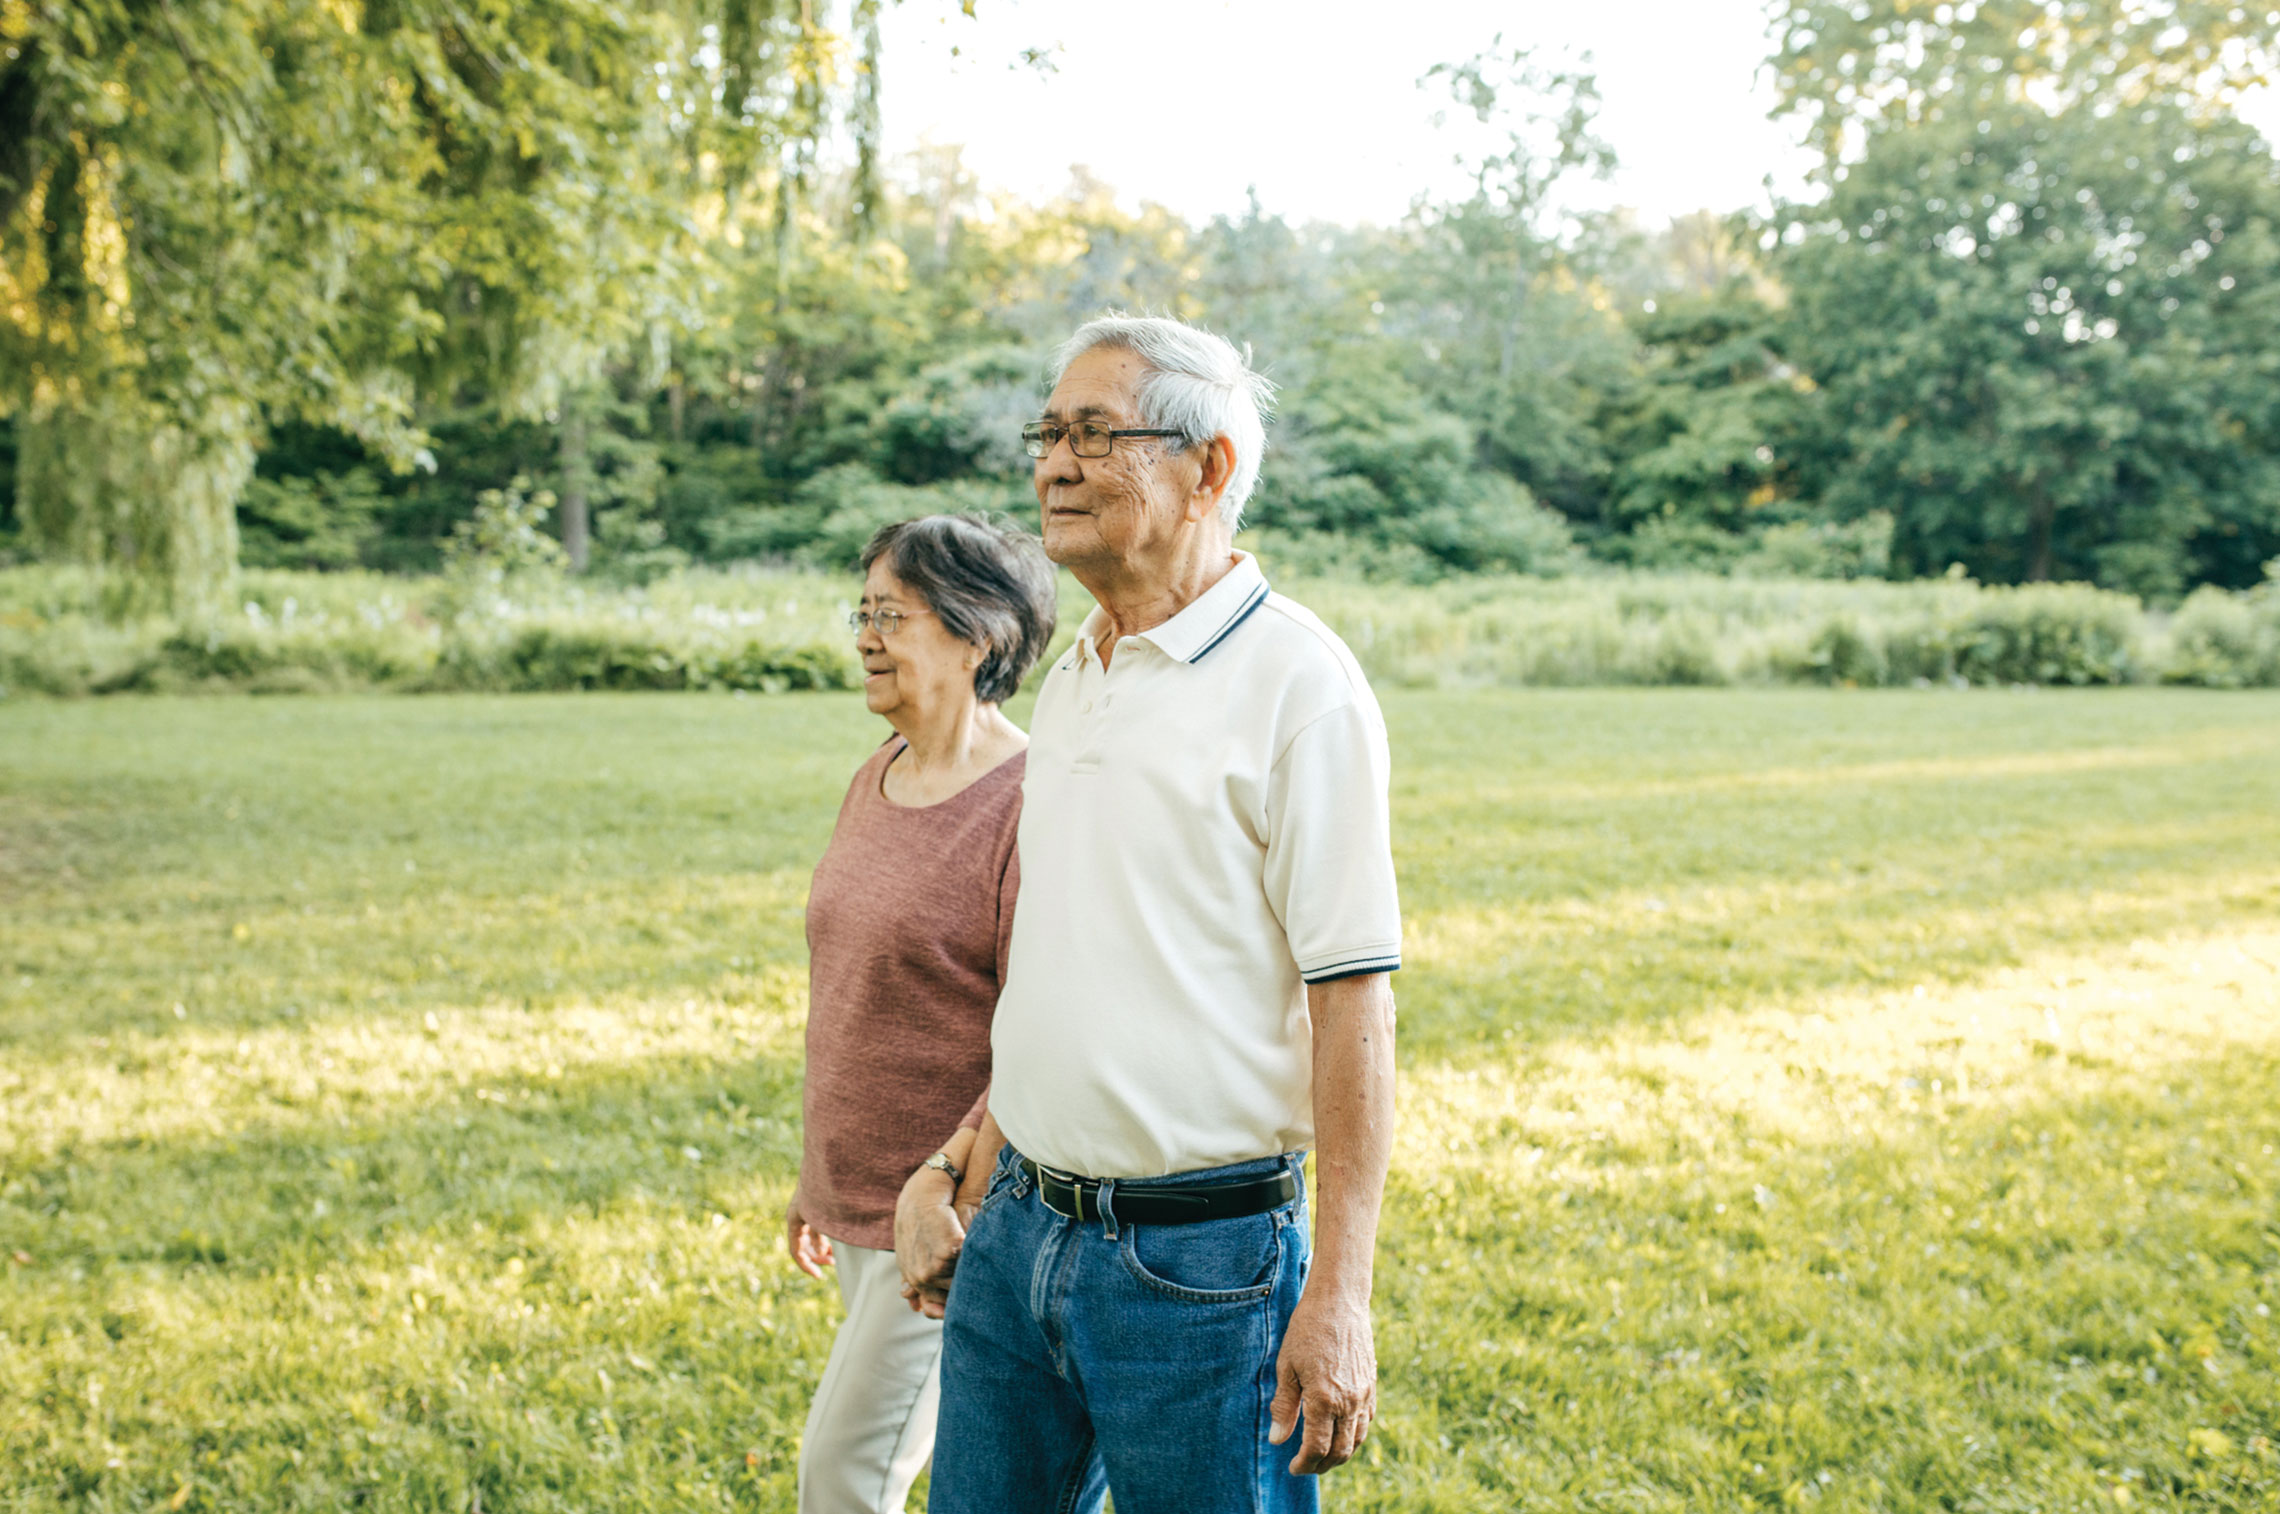 The Risks of Increased Longevity